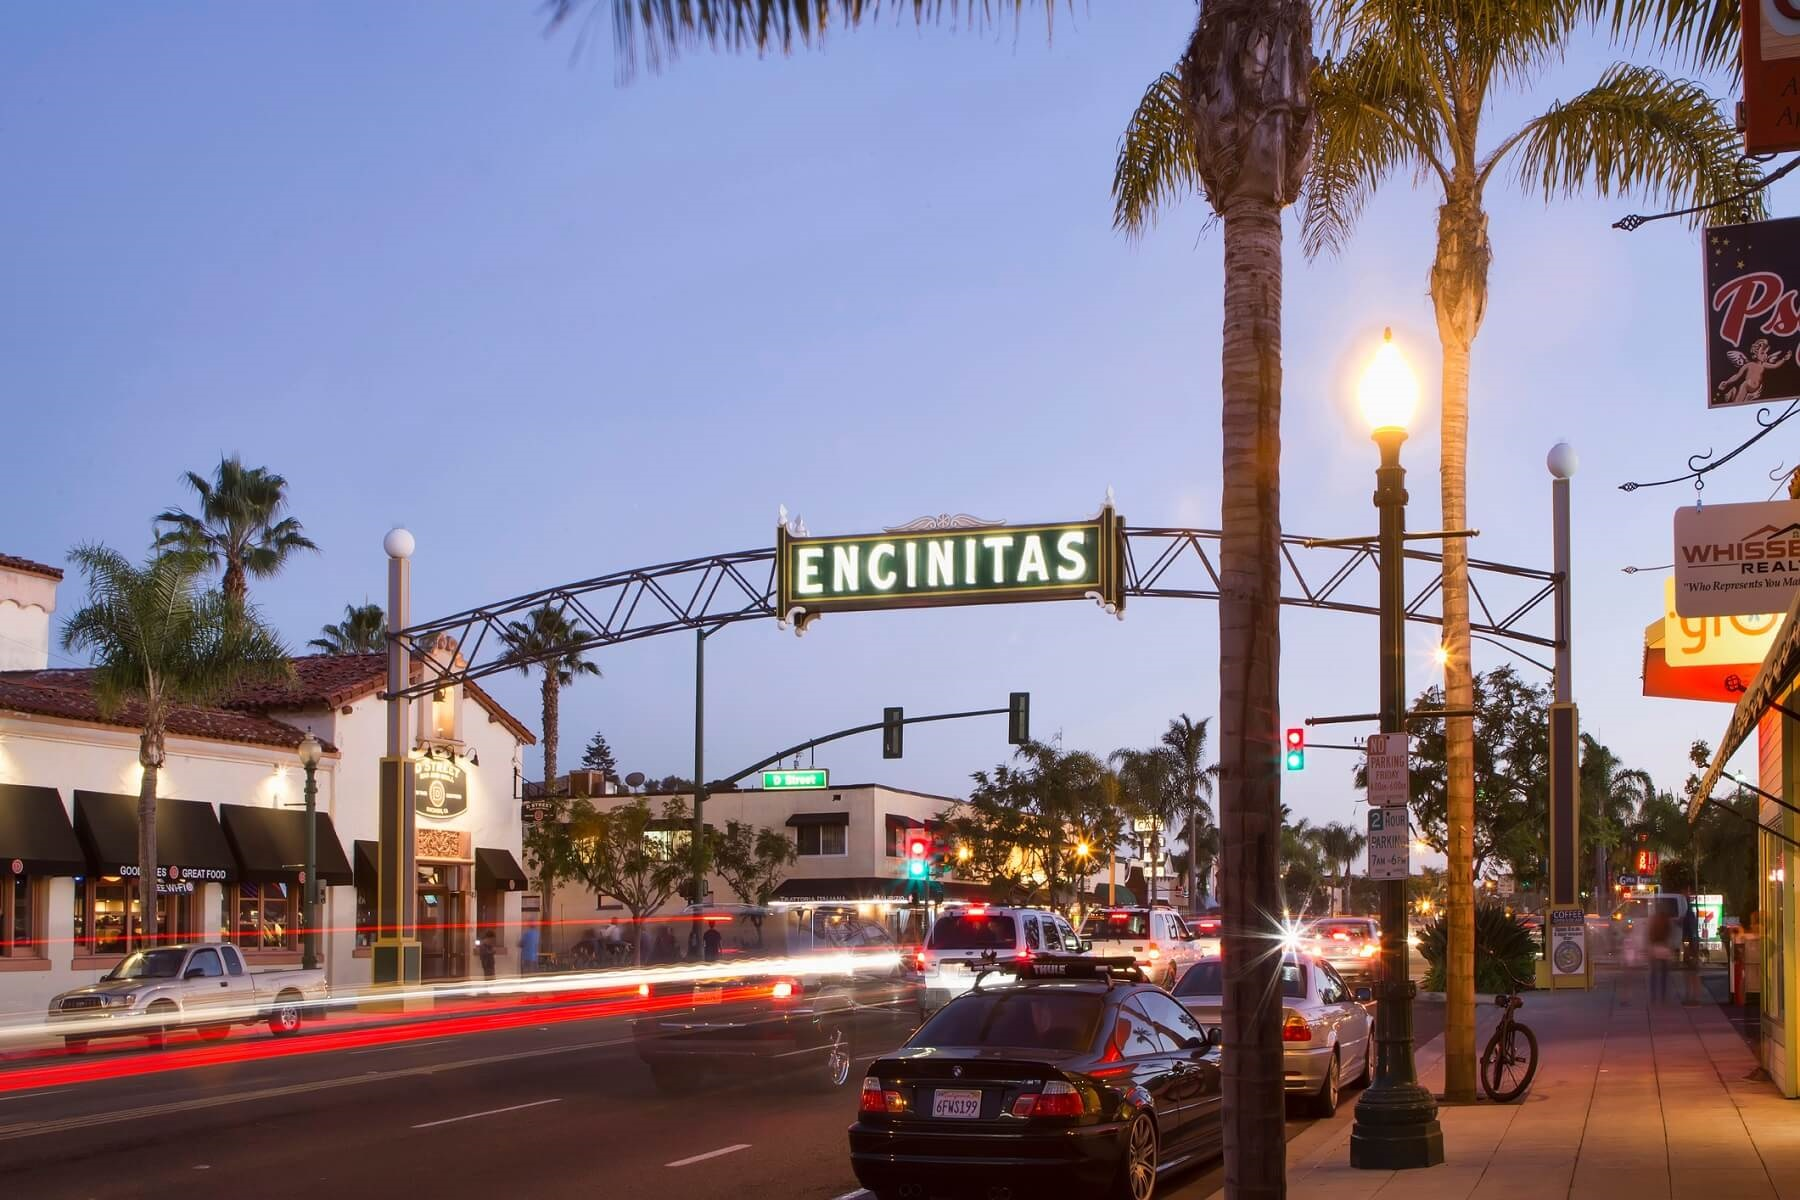 main street in encinitas